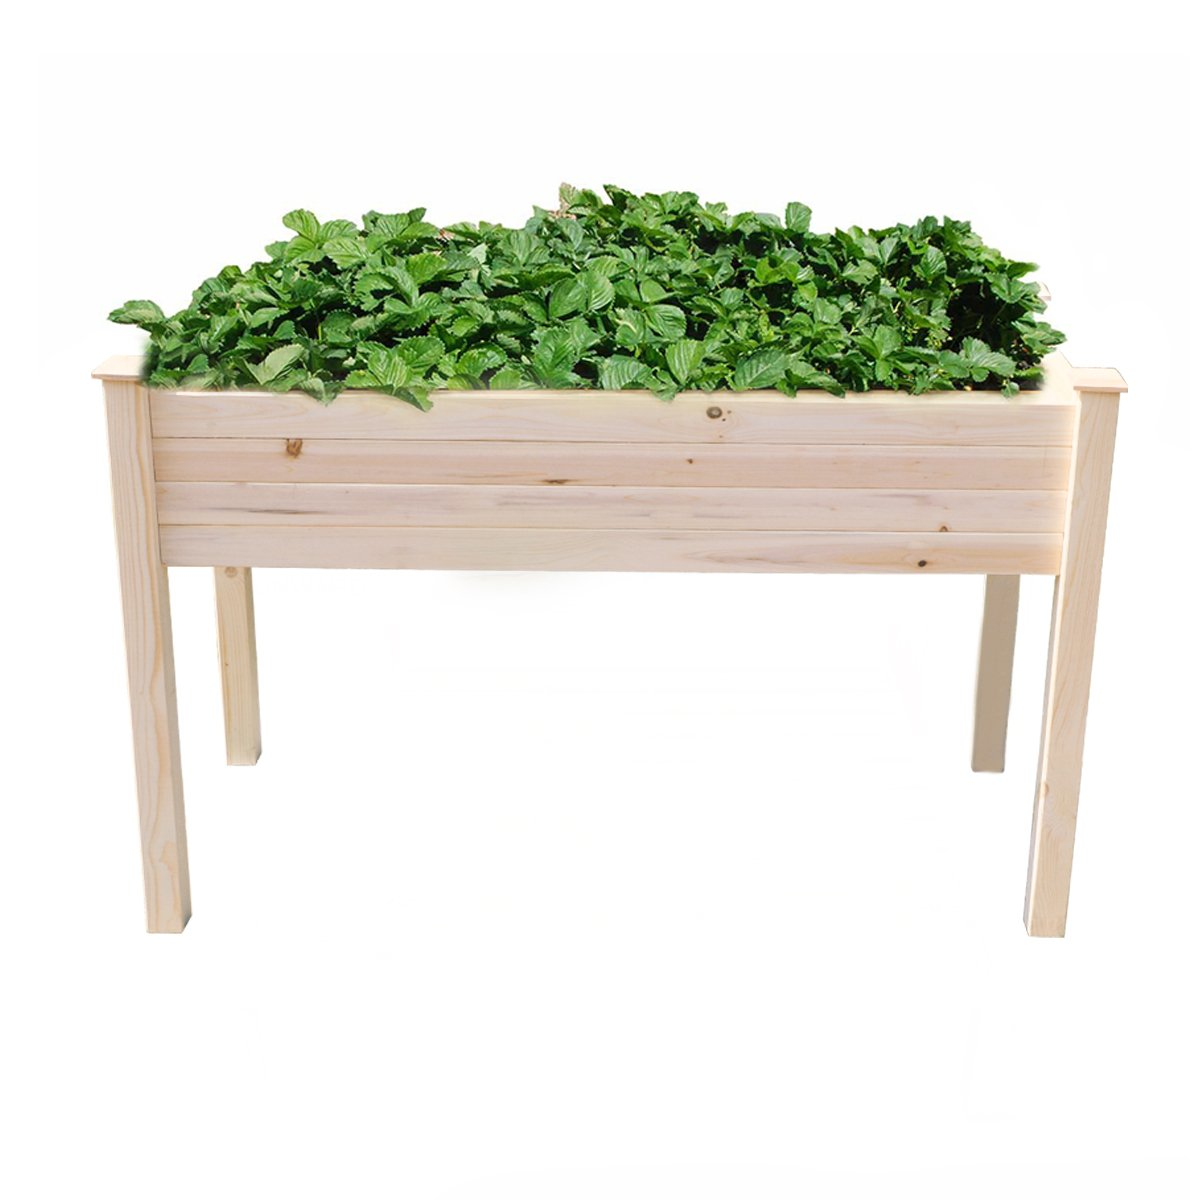 Yardeen Raised Vegetable Gardening Bed Yard Big Herb Planter Box Naturel Cedar Wood 7.48'' Box Depth by Yardeen